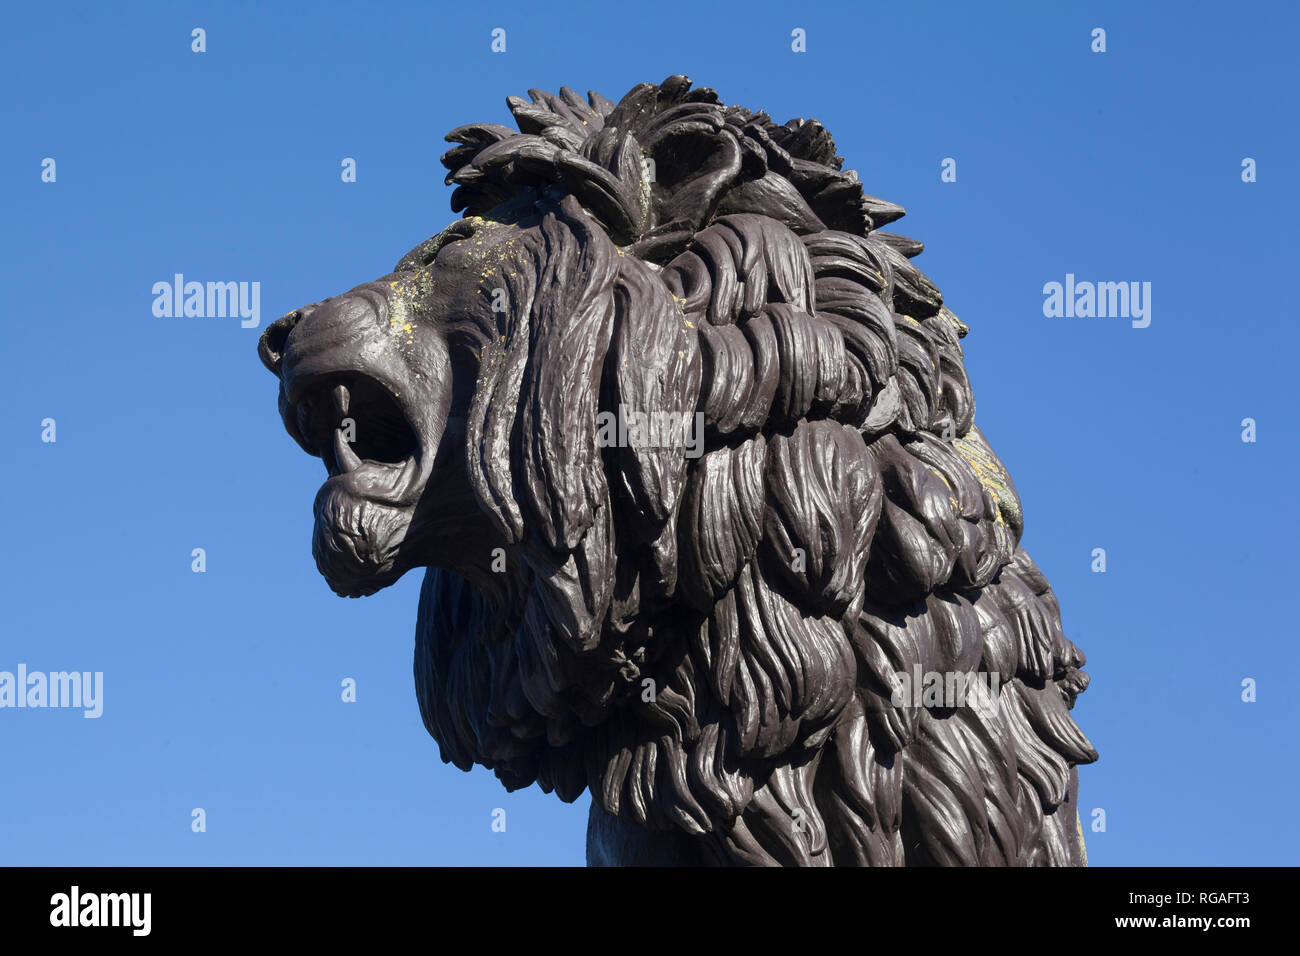 The head of the bronze statue of the Forbury Lion in Forbury Gardens, Reading, Berkshire Stock Photo